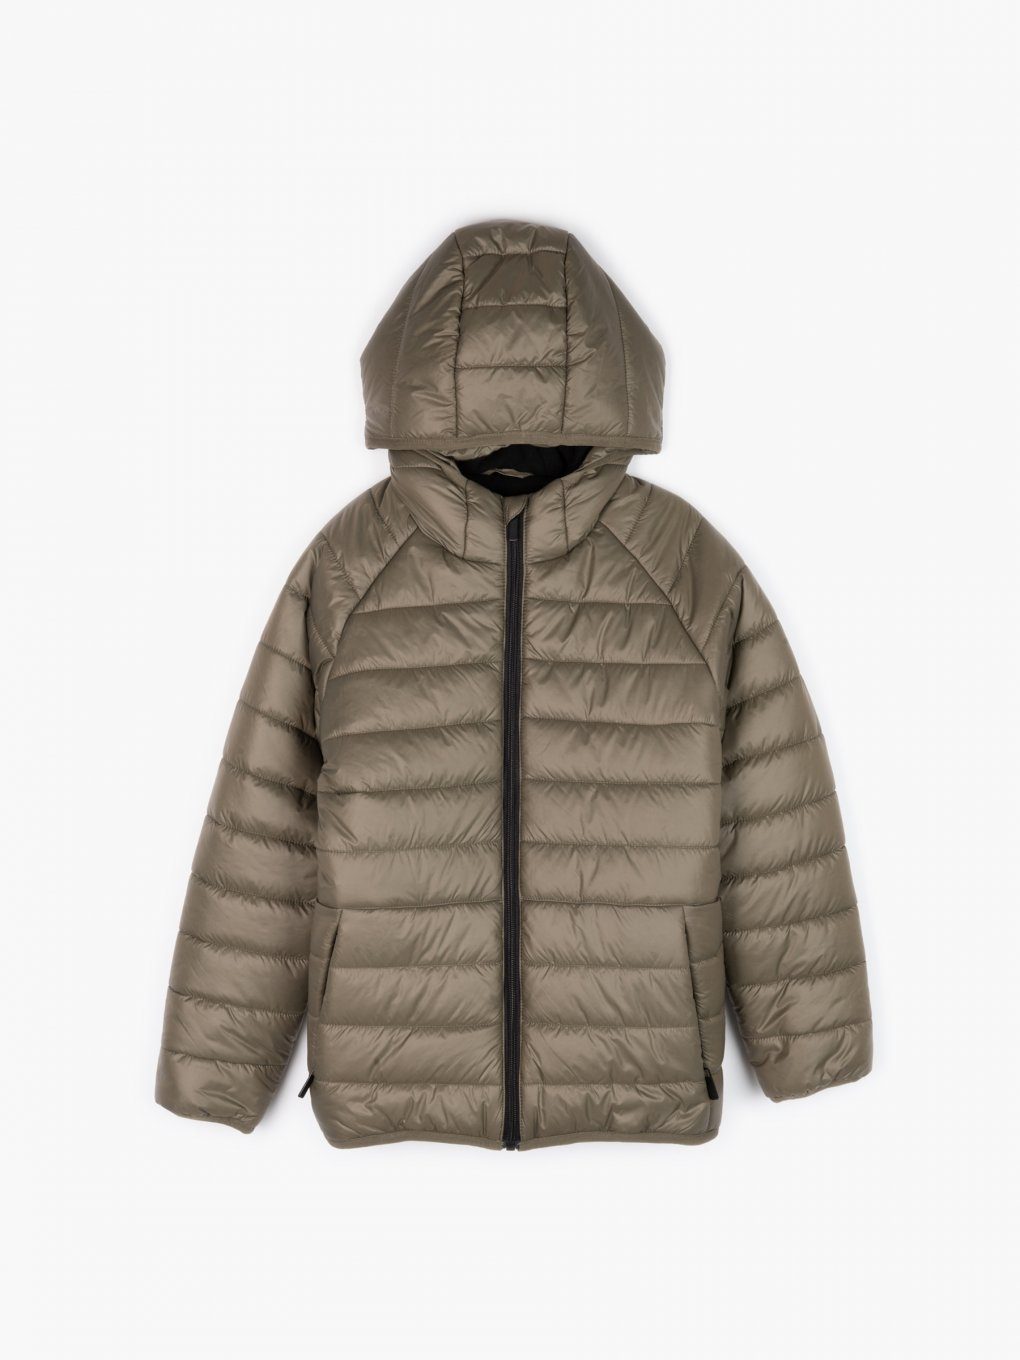 Basic fleece lined padded jacket